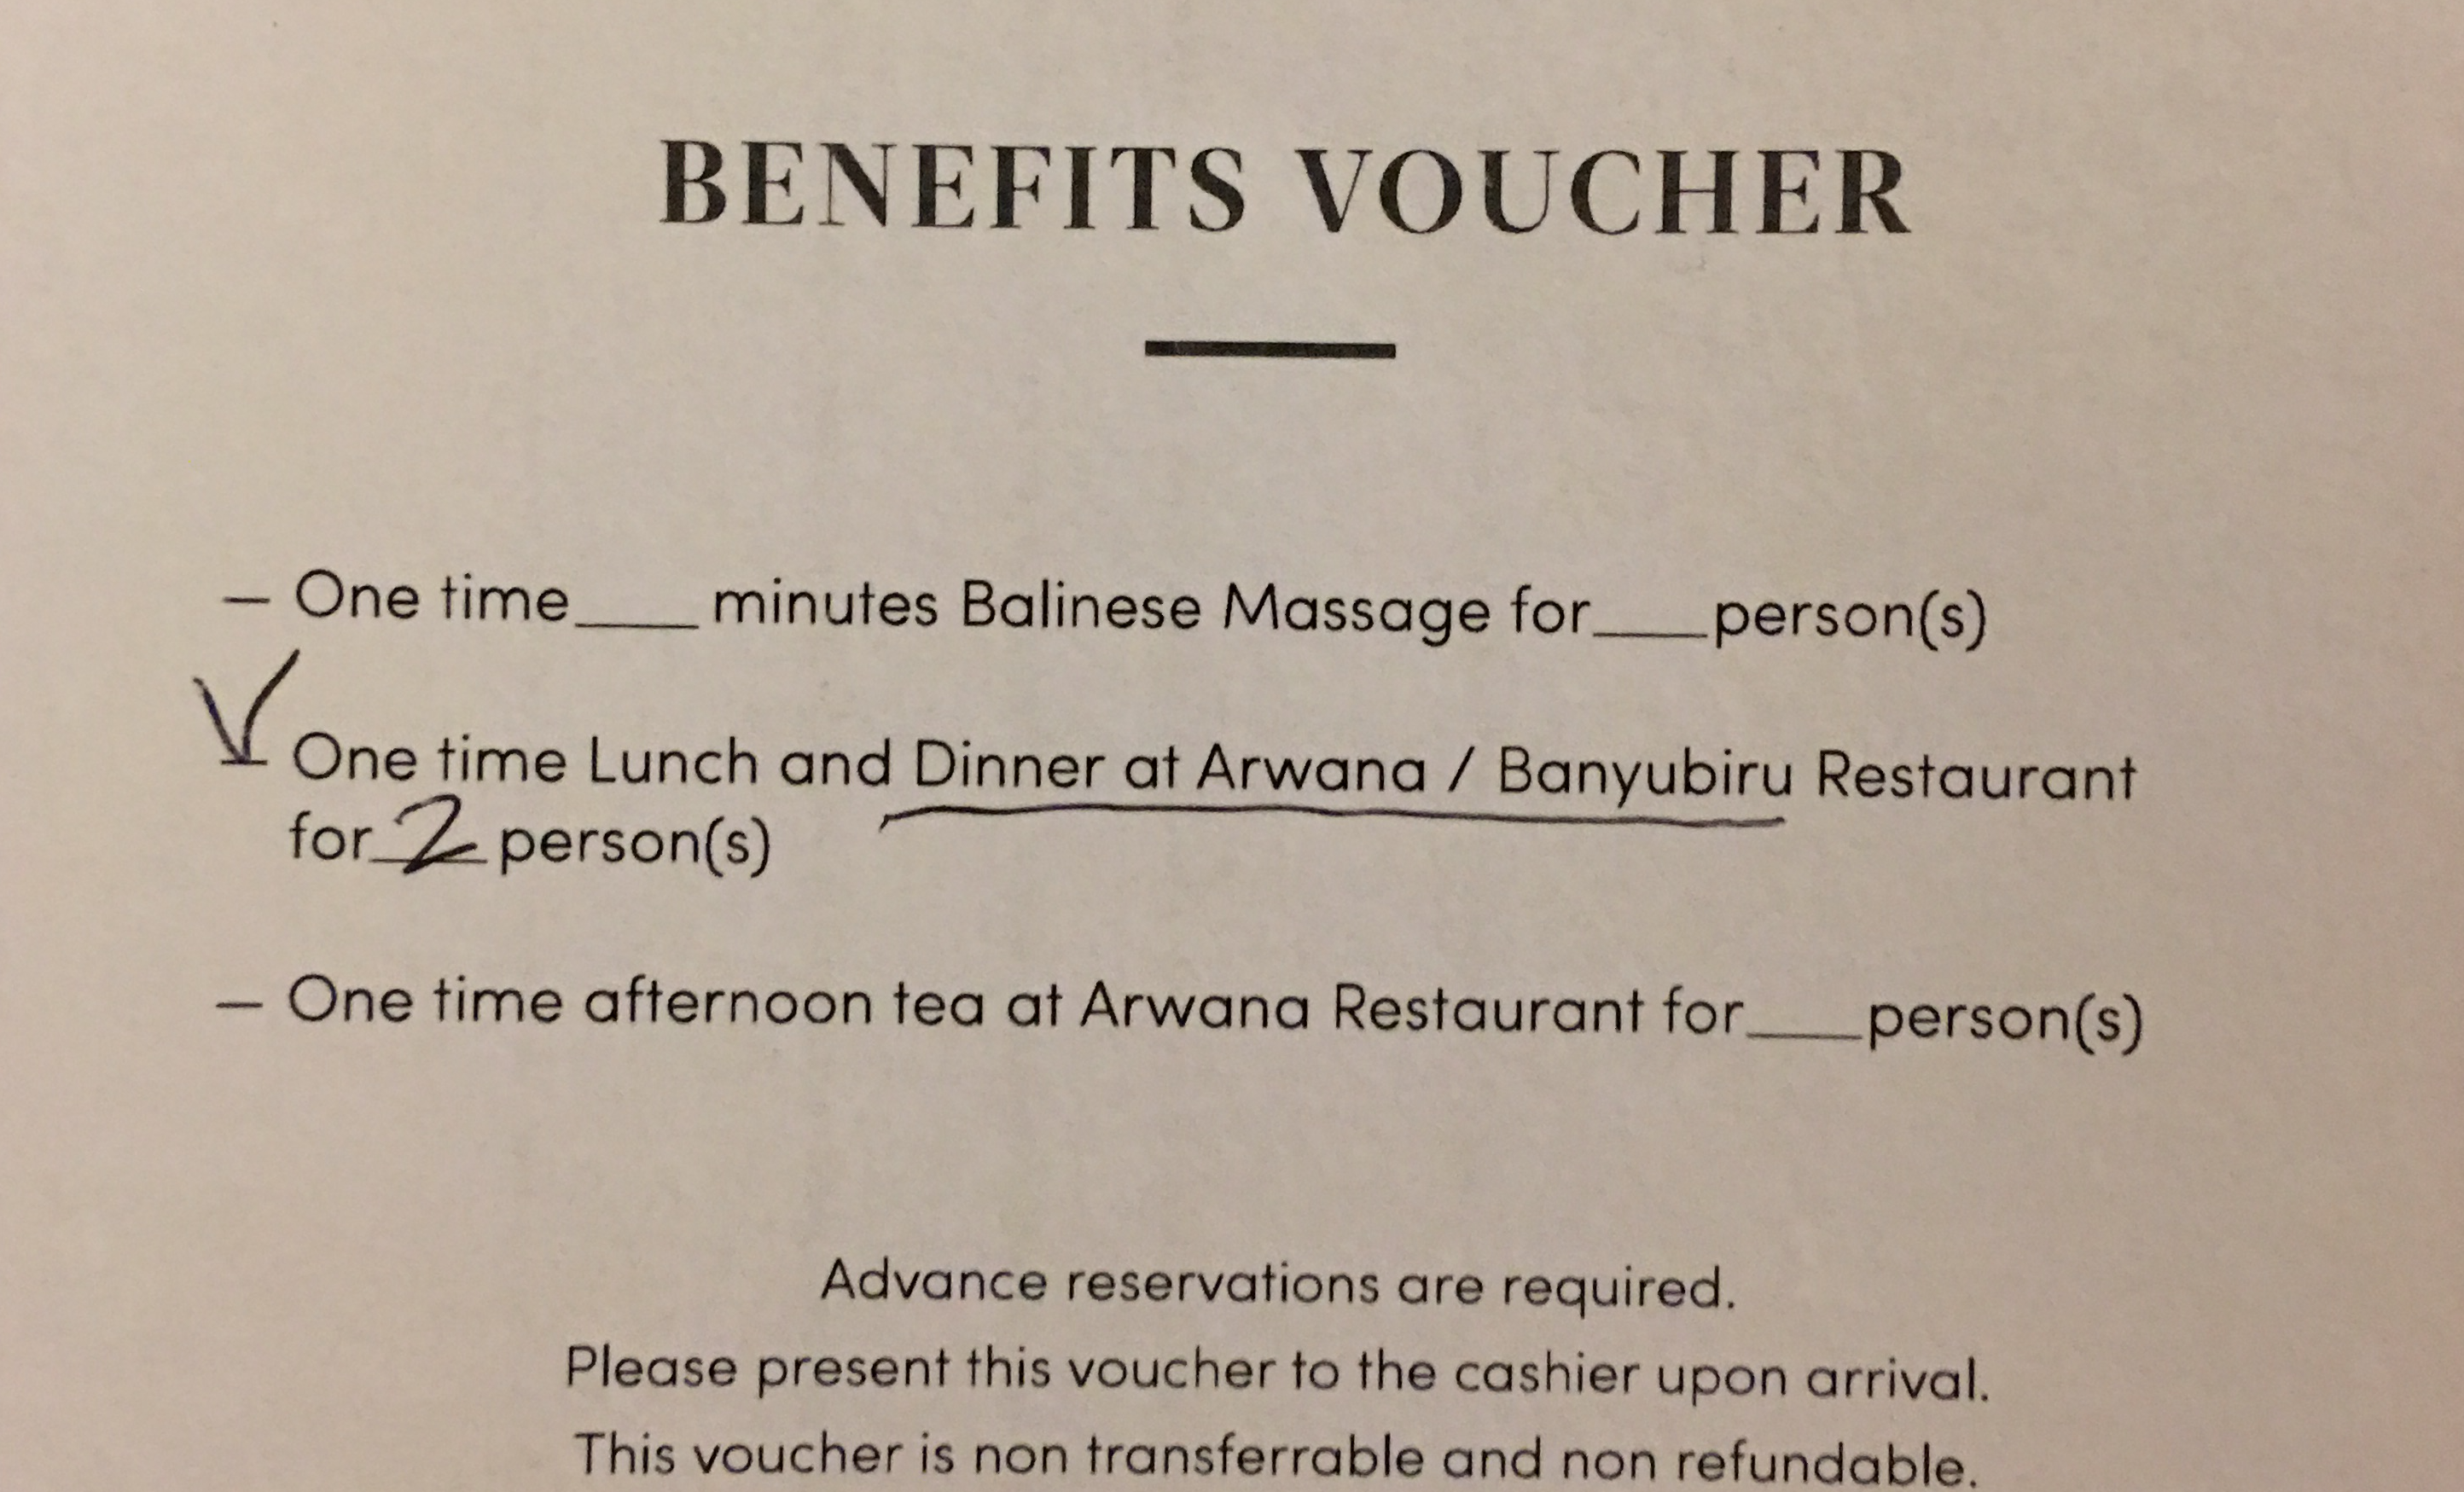 Compensation Clinic Construction Noise At Holiday Resort Sheraton Voucer Hotel Best Western Kuta Bali We Decided To Have Dinner The Arwana Which Has A La Carte Options Banyubiru Is Buffet And It Was Really Bad Air In Dining Area